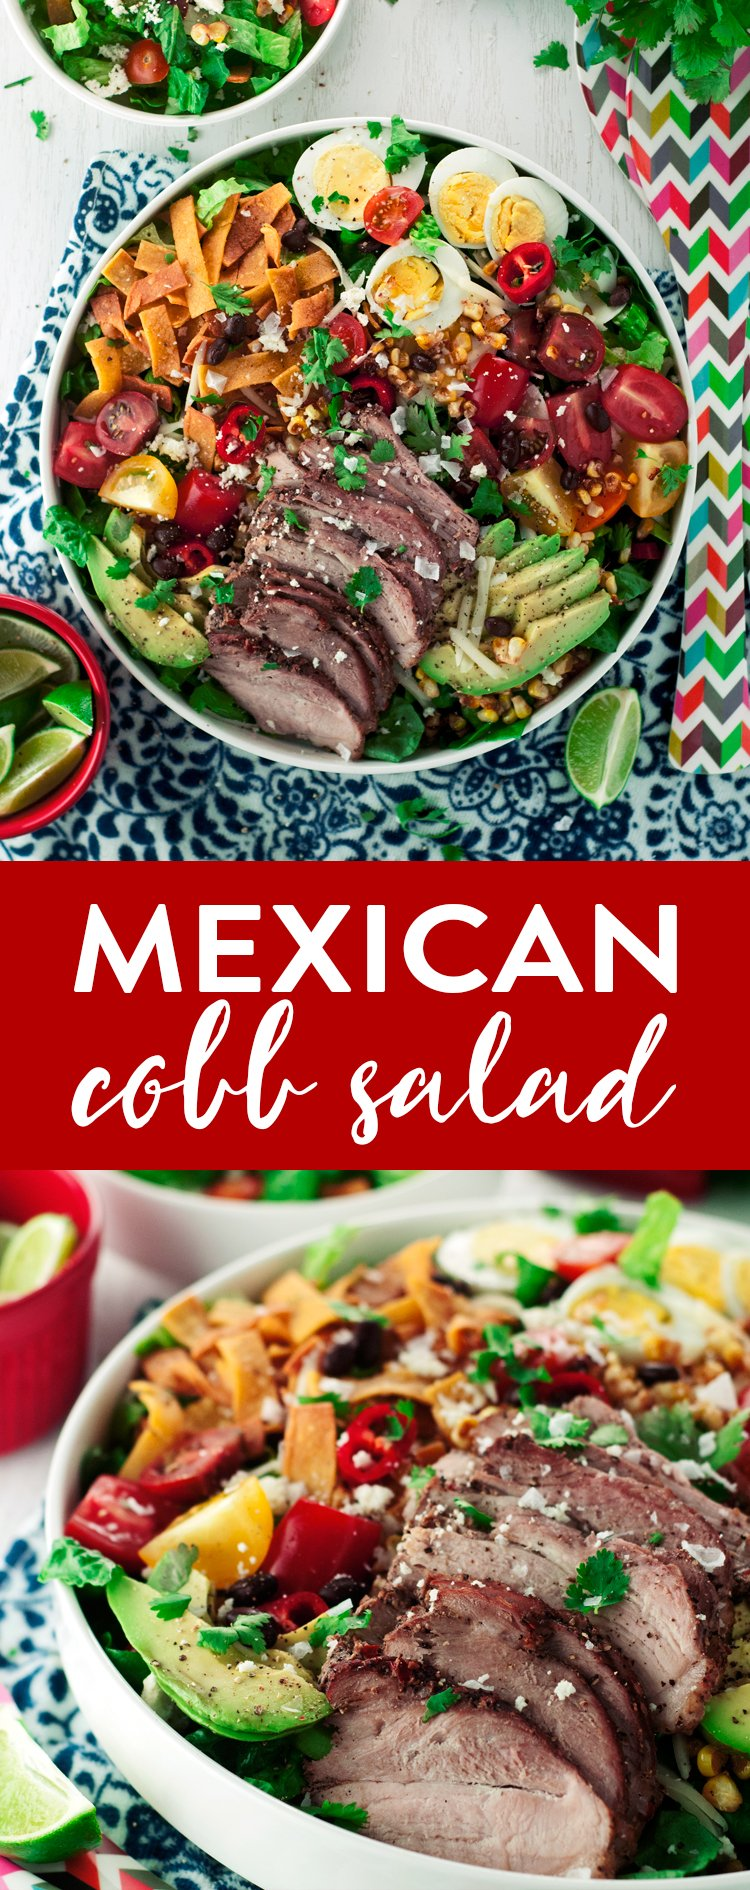 This Mexican Cobb Salad is so easy it'll blow your mind! Bring on the flavor, and don't skimp on the spice! | asimplepantry.com